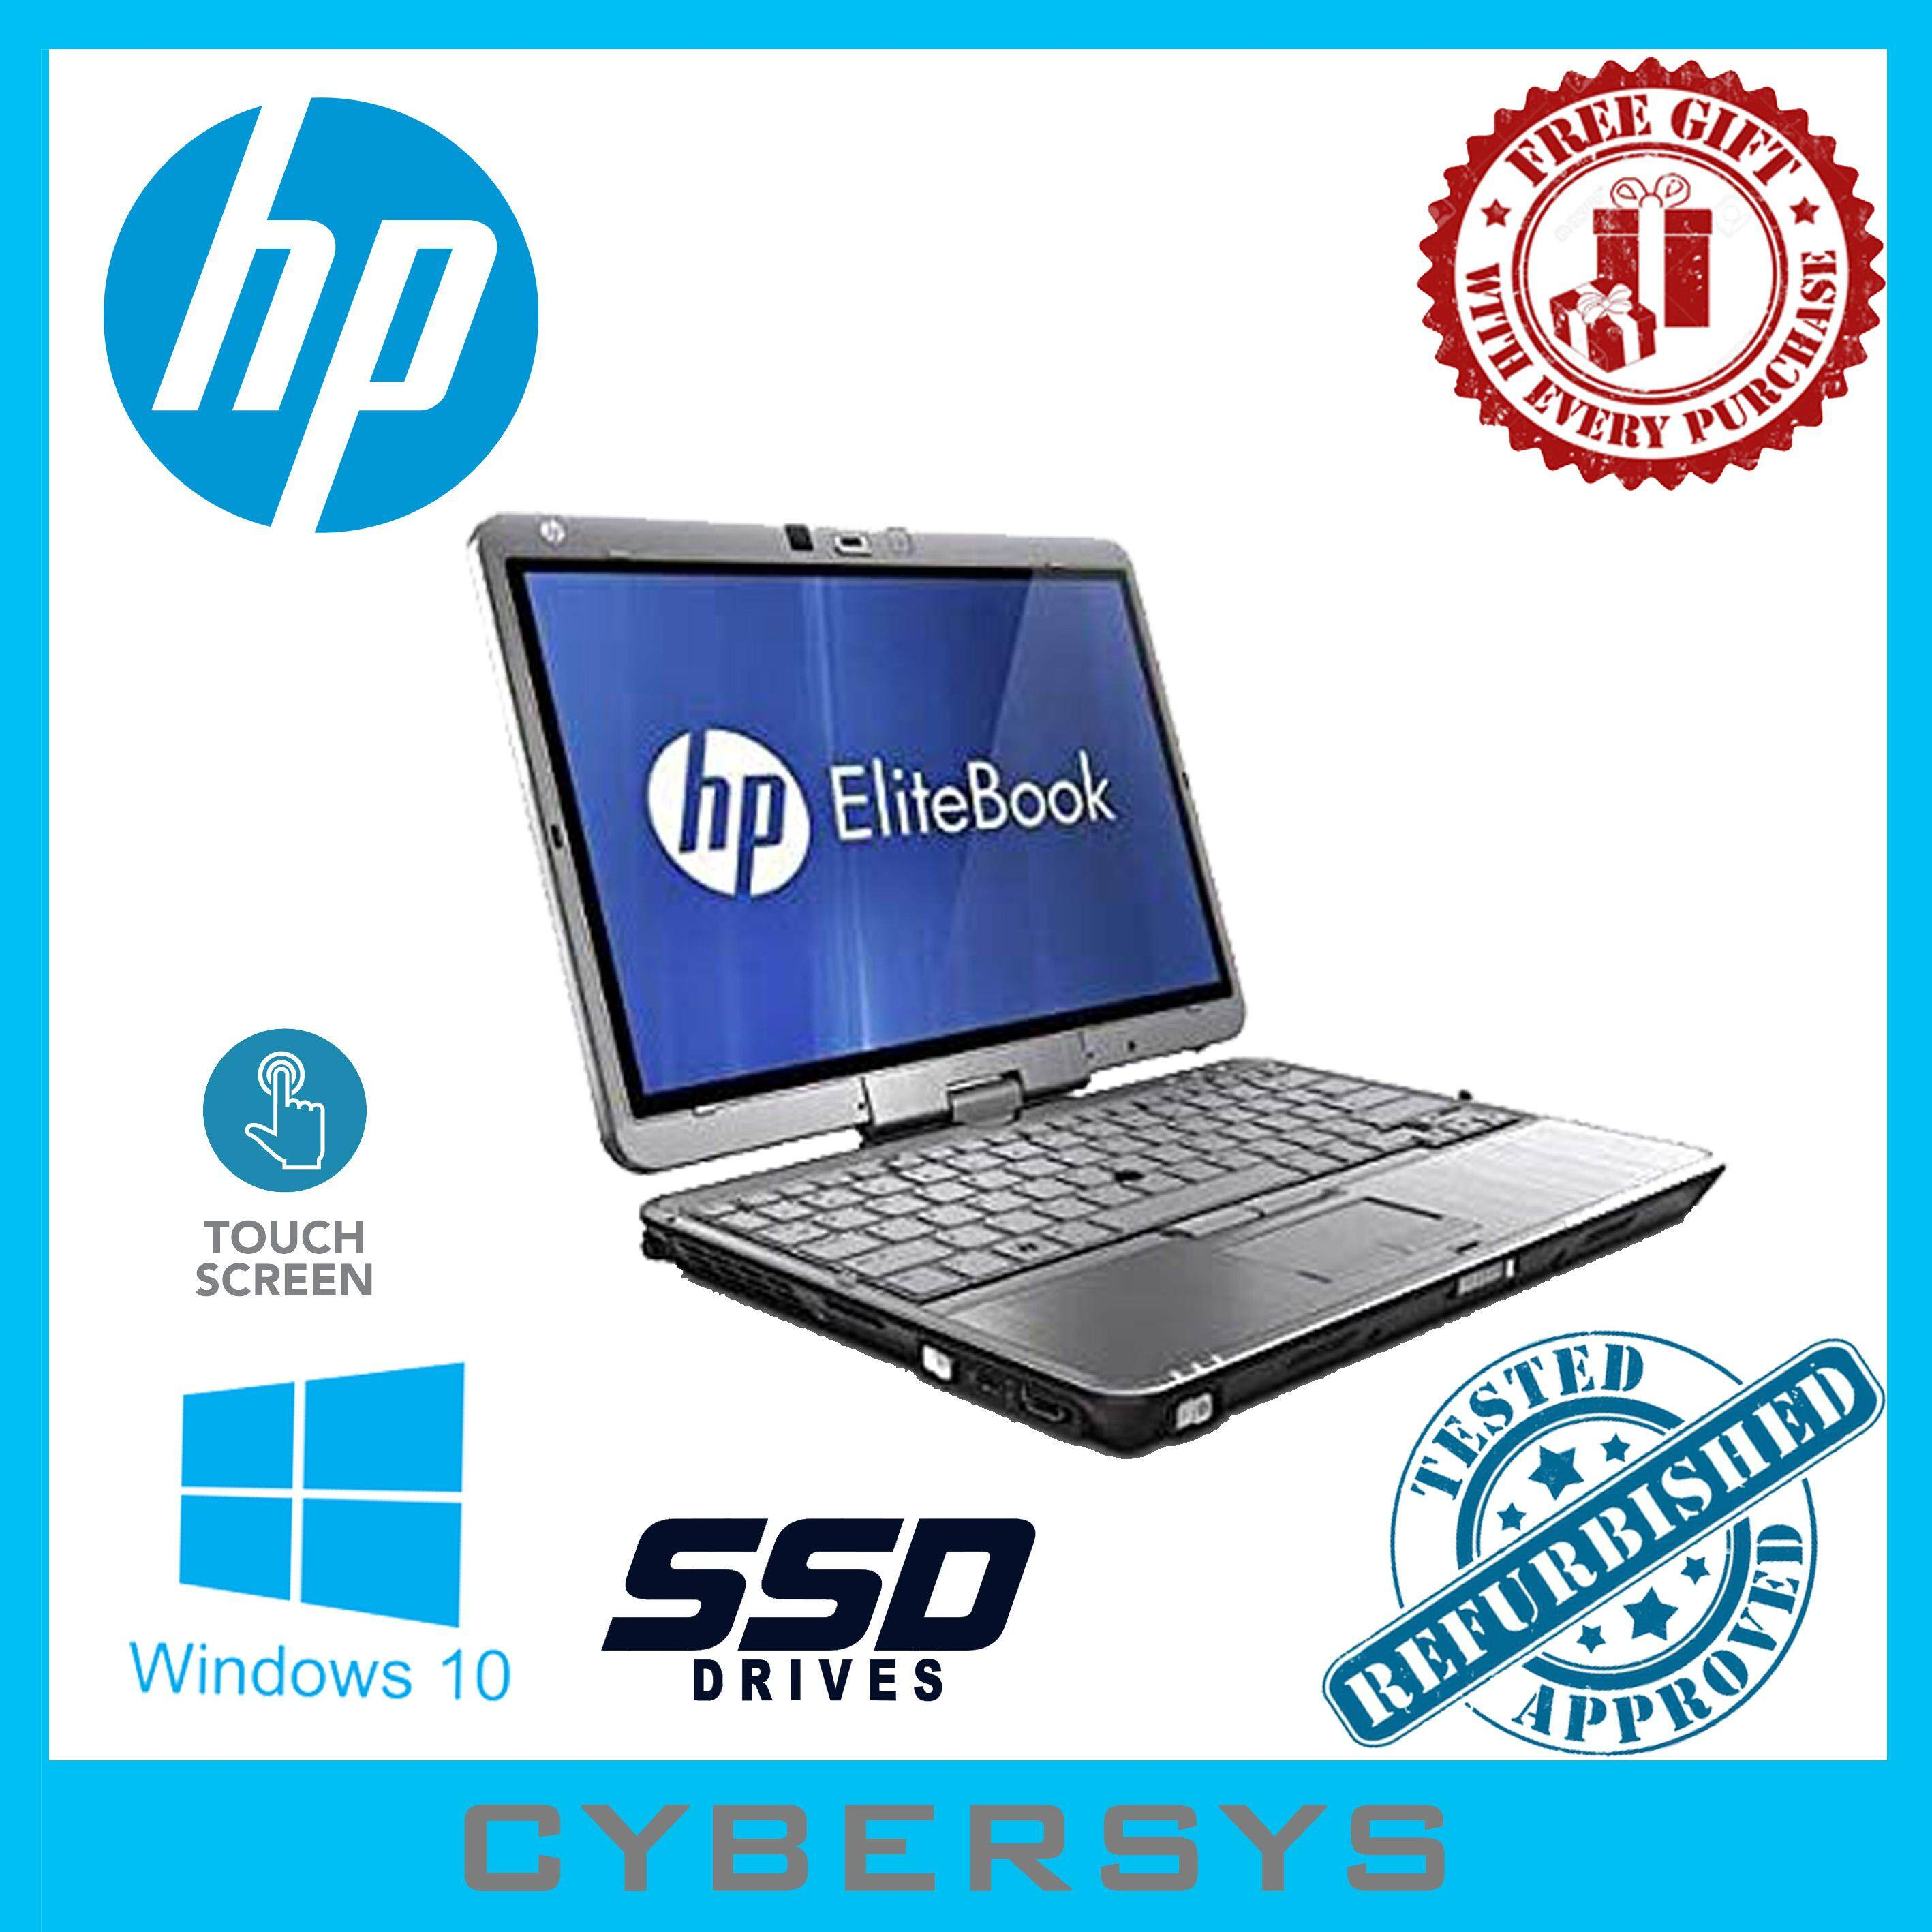 HP Elitebook Intel Core i7 8GB 128GB SSD Laptop Notebook (Refurbished) Malaysia